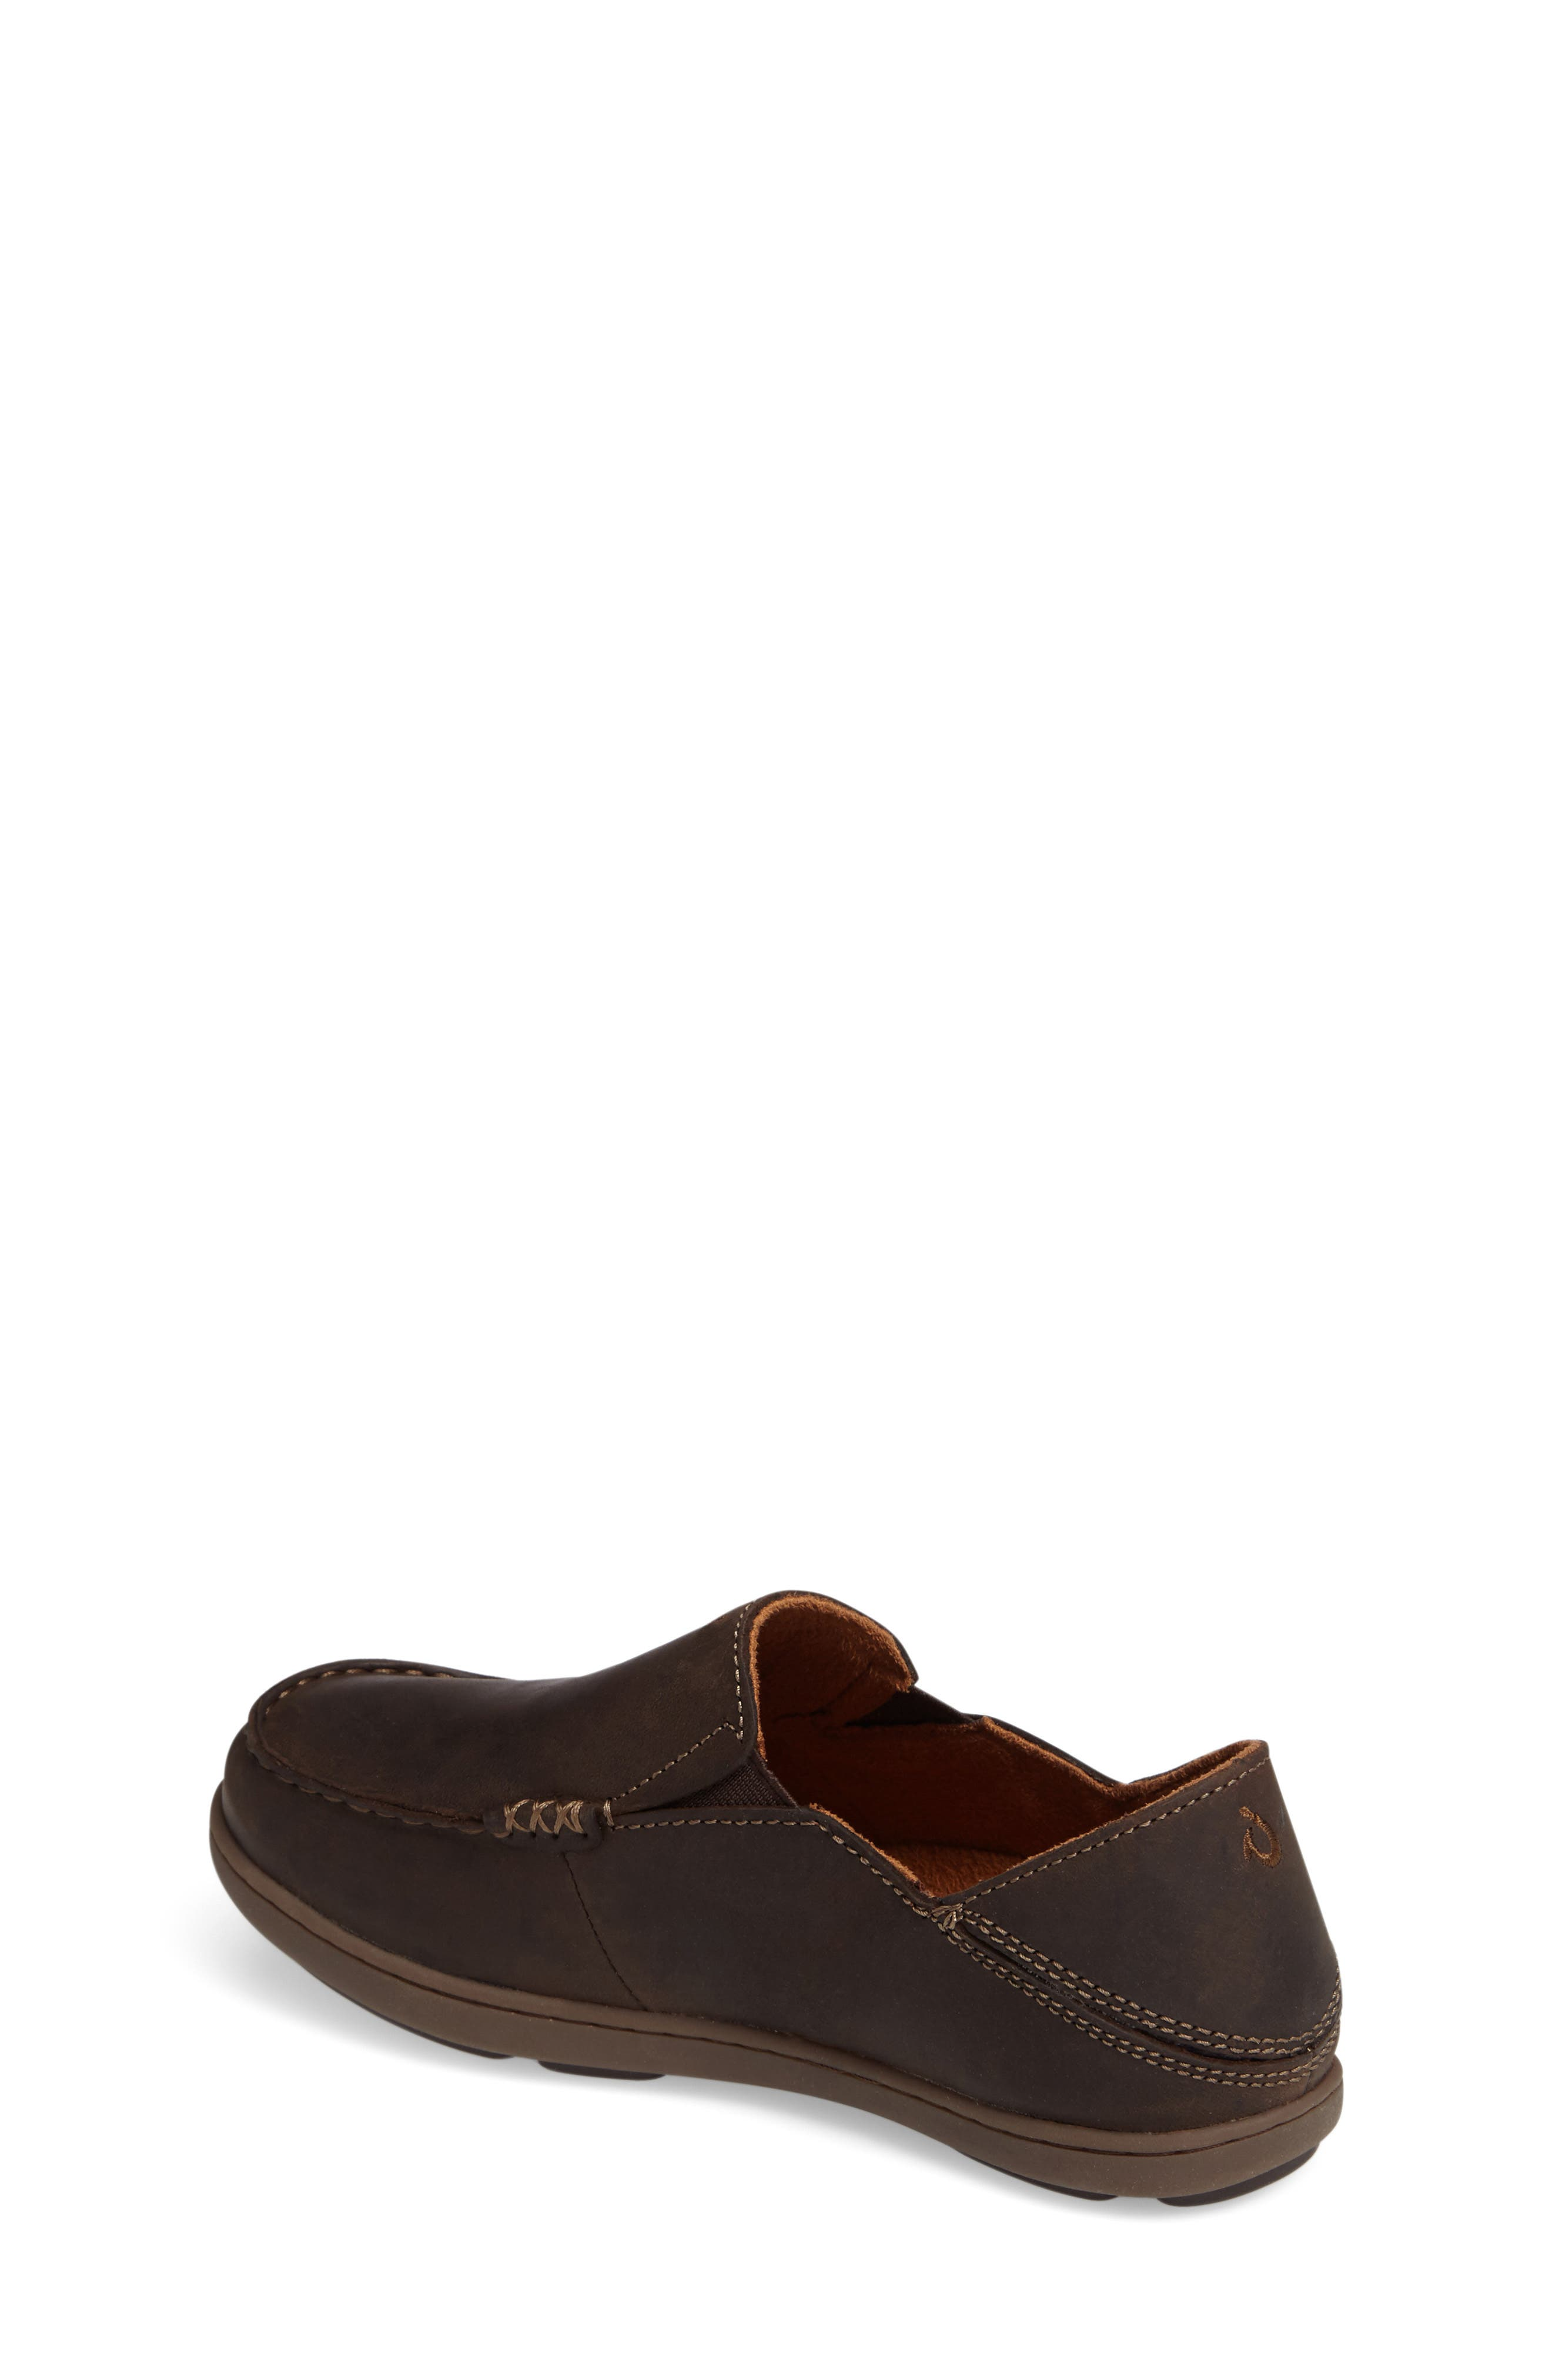 'Moloa' Water Resistant Slip-On,                             Alternate thumbnail 2, color,                             DARK WOOD/ MUSTANG